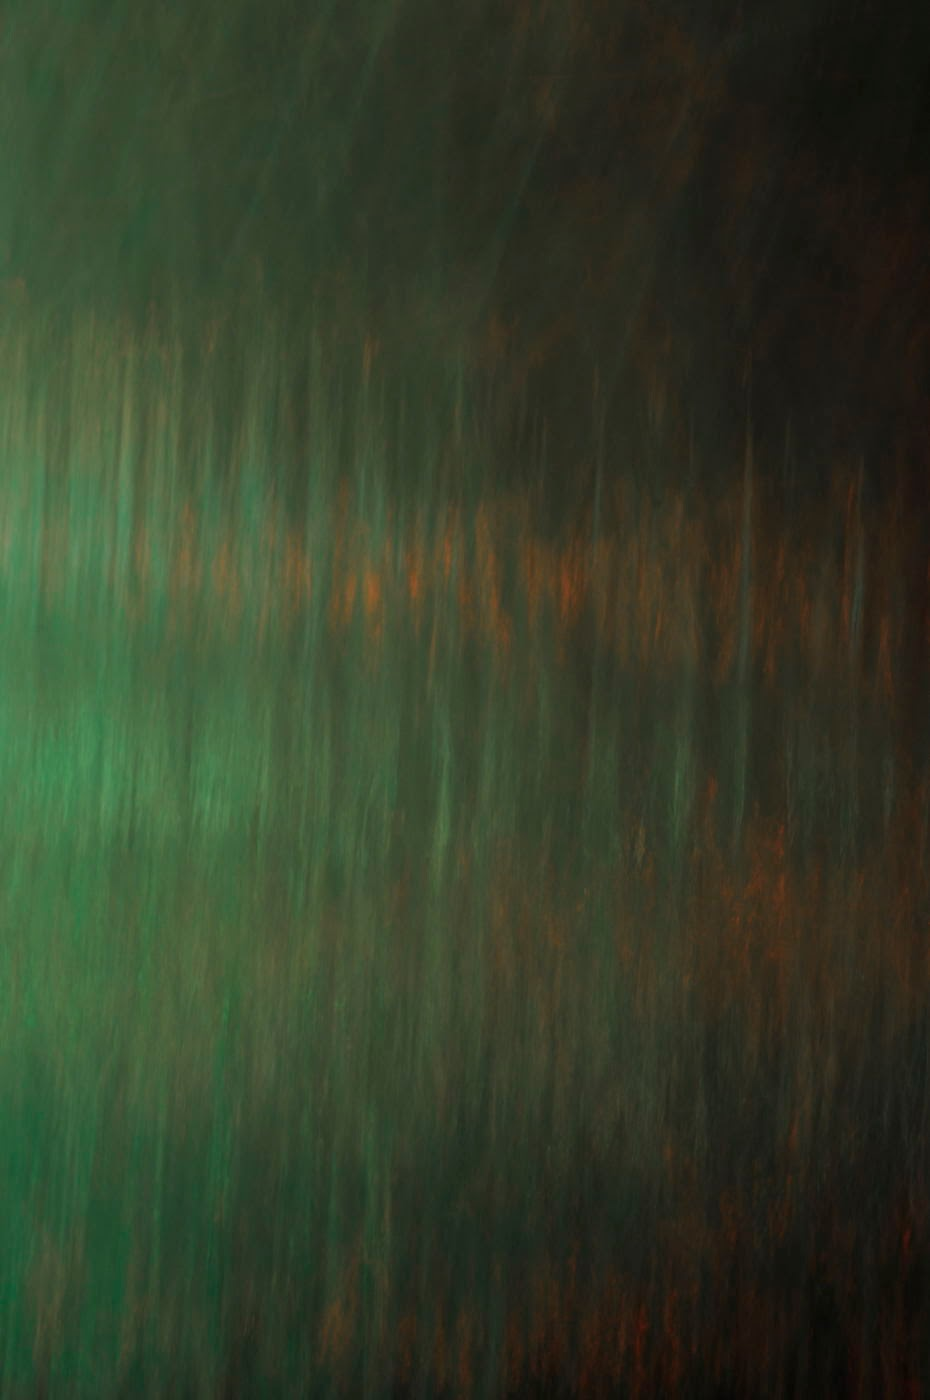 Tim Macauley, state transference, abstract, abstraction, abstractional, the light monkey collective, Australian, photographic artist, photographic, digital, art, fine art, you won't see this at MoMA